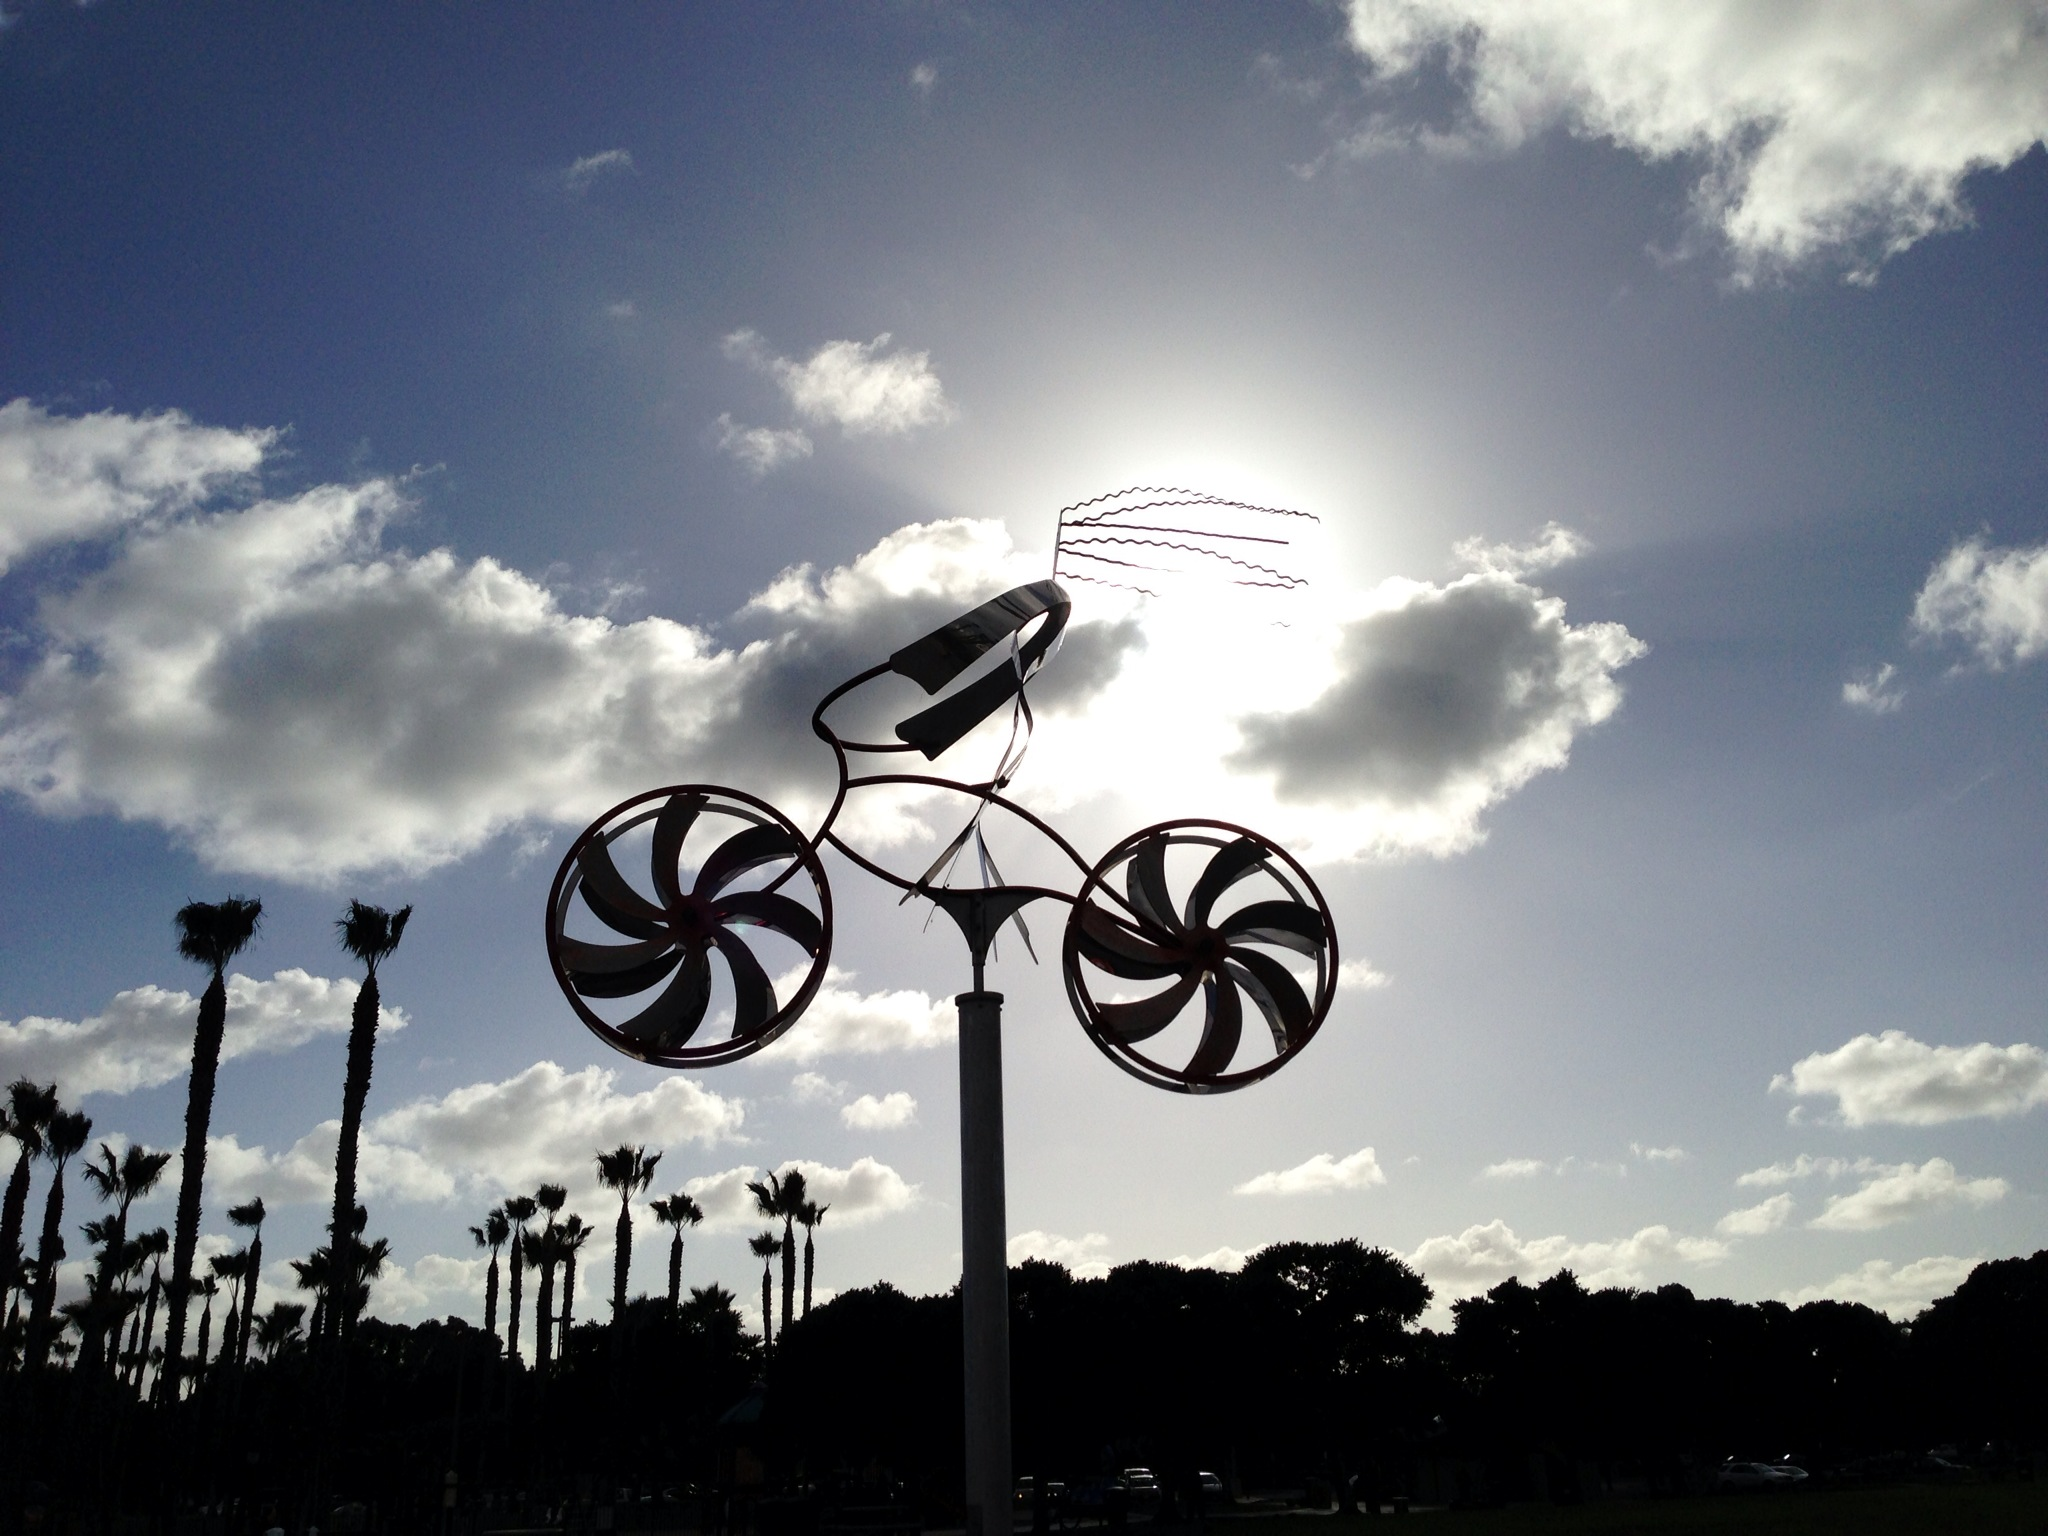 Moving bike sculpture at the park.